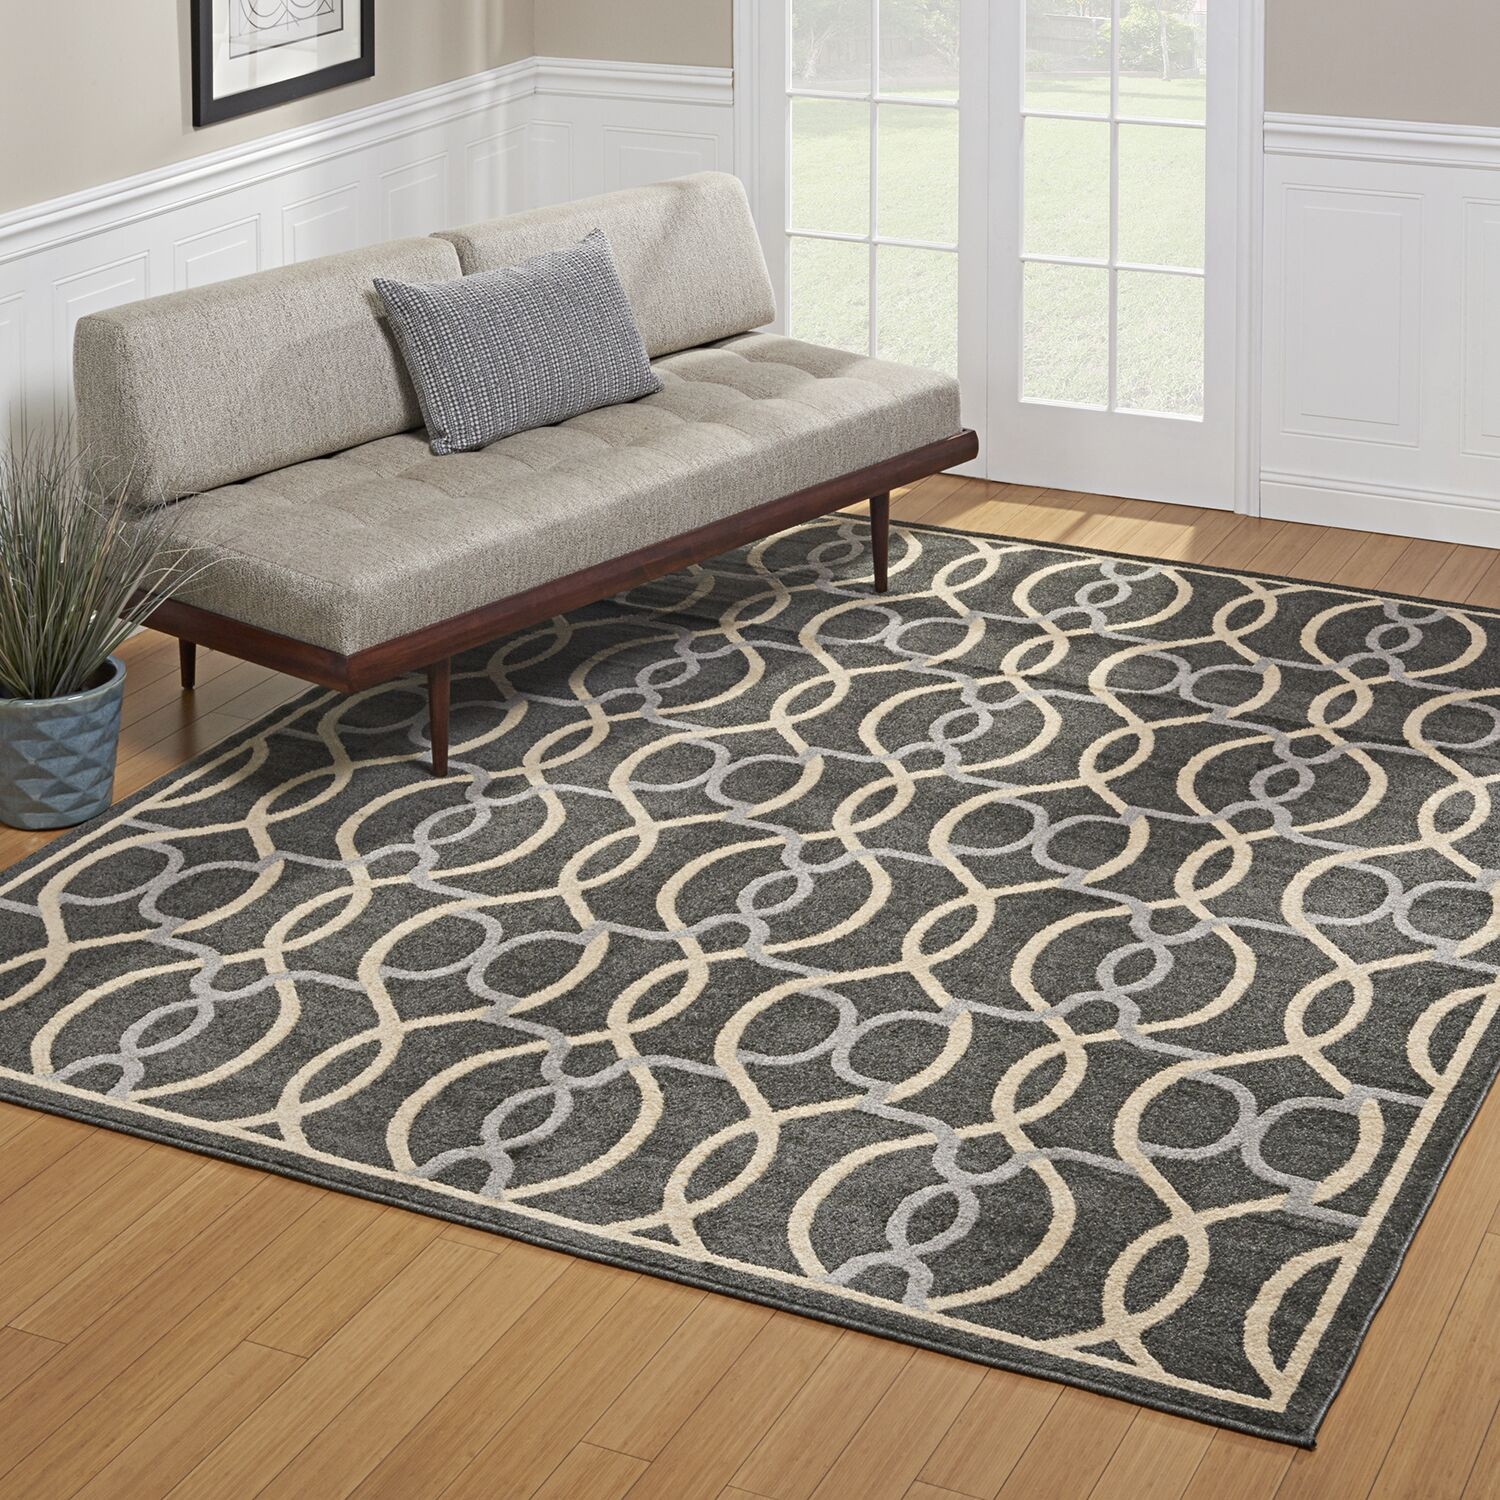 Abraham Charcoal Gray Indoor/Outdoor Area Rug Rug Size: Rectangle 7'10